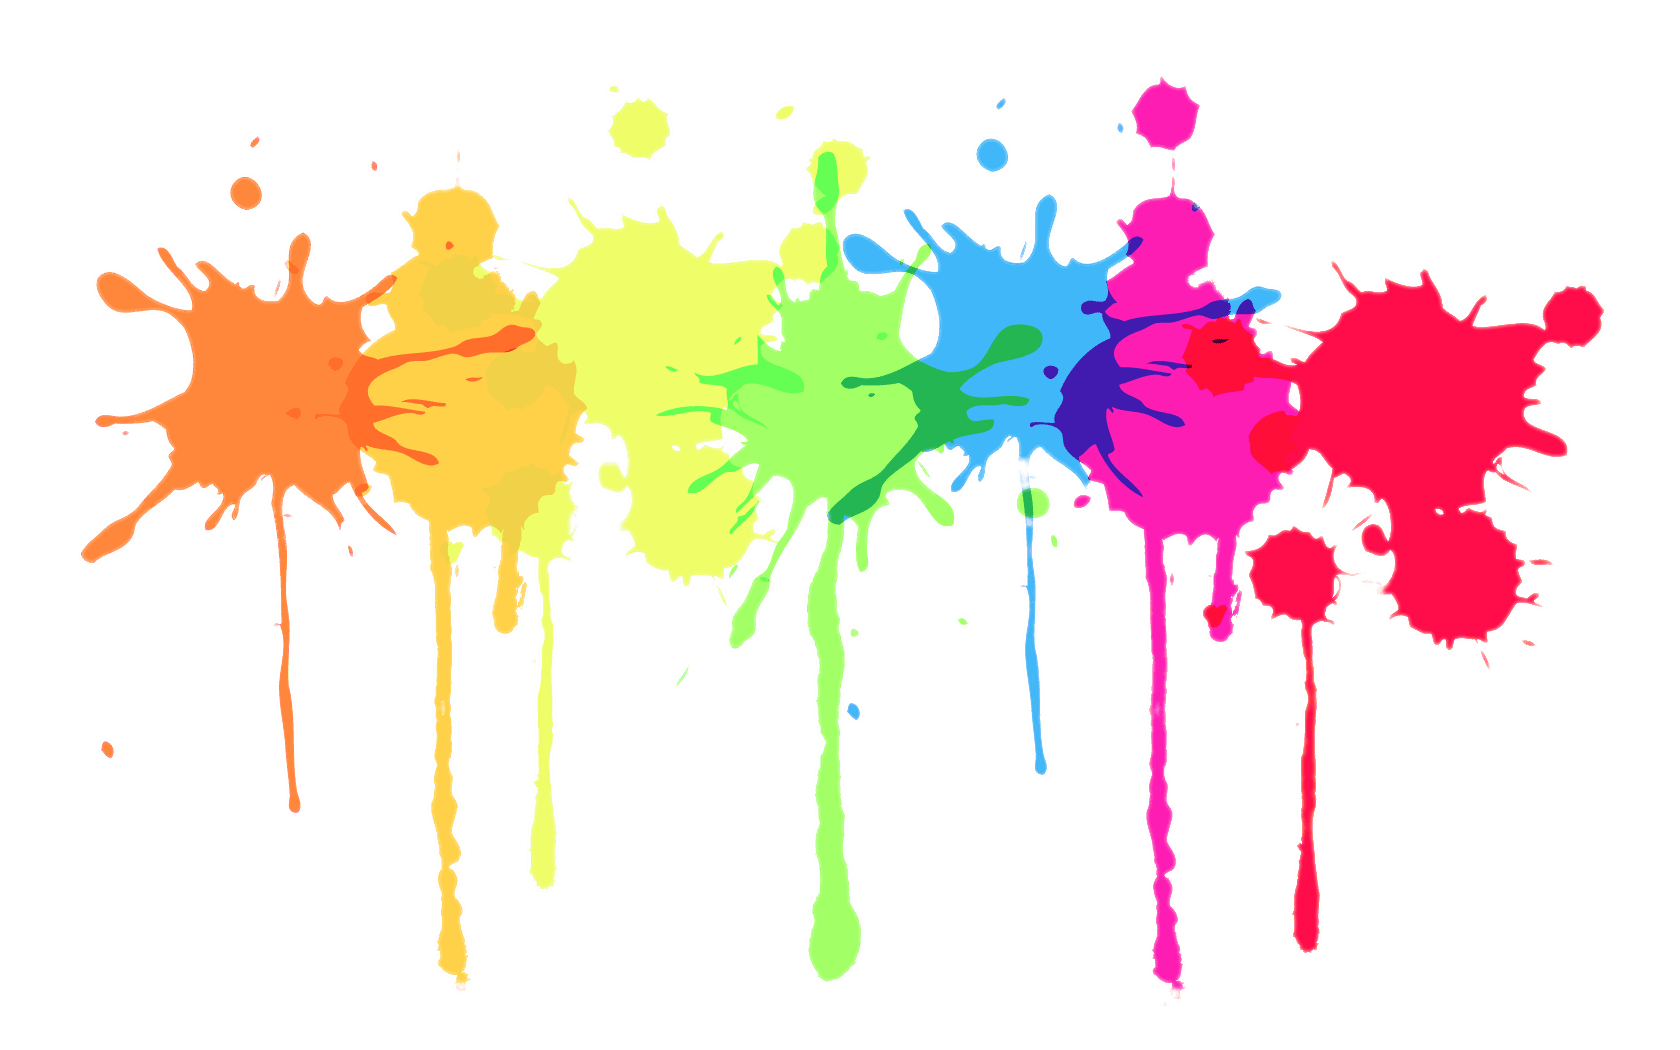 Png transparent background paint. Multicolour splatter stickpng